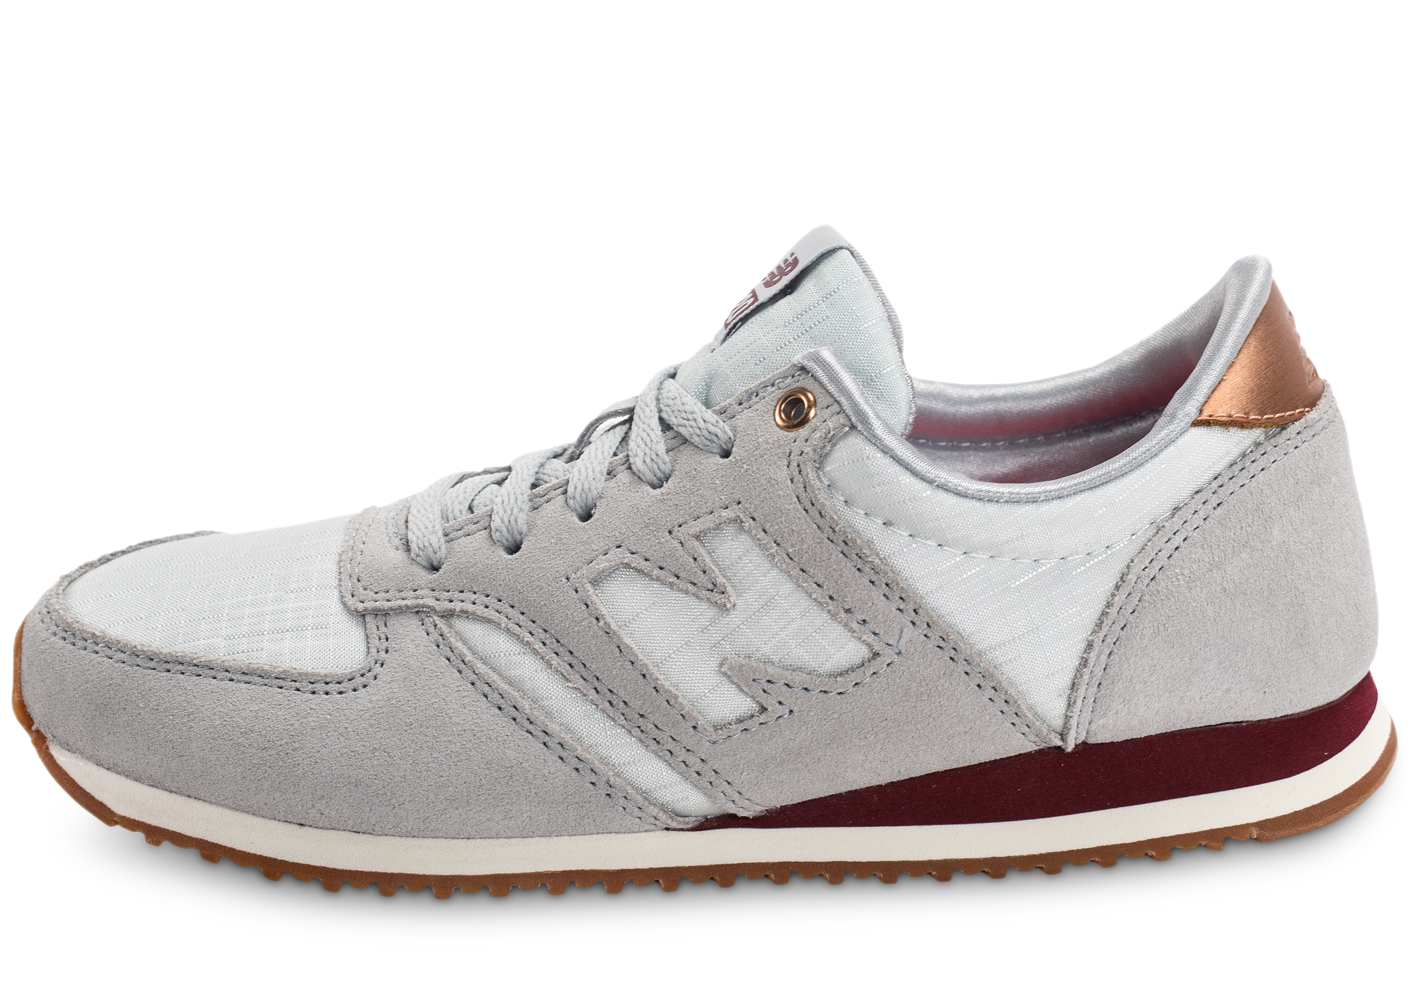 New Balance Wl420scb Beige Et Bordeaux Baskets/Running Femme